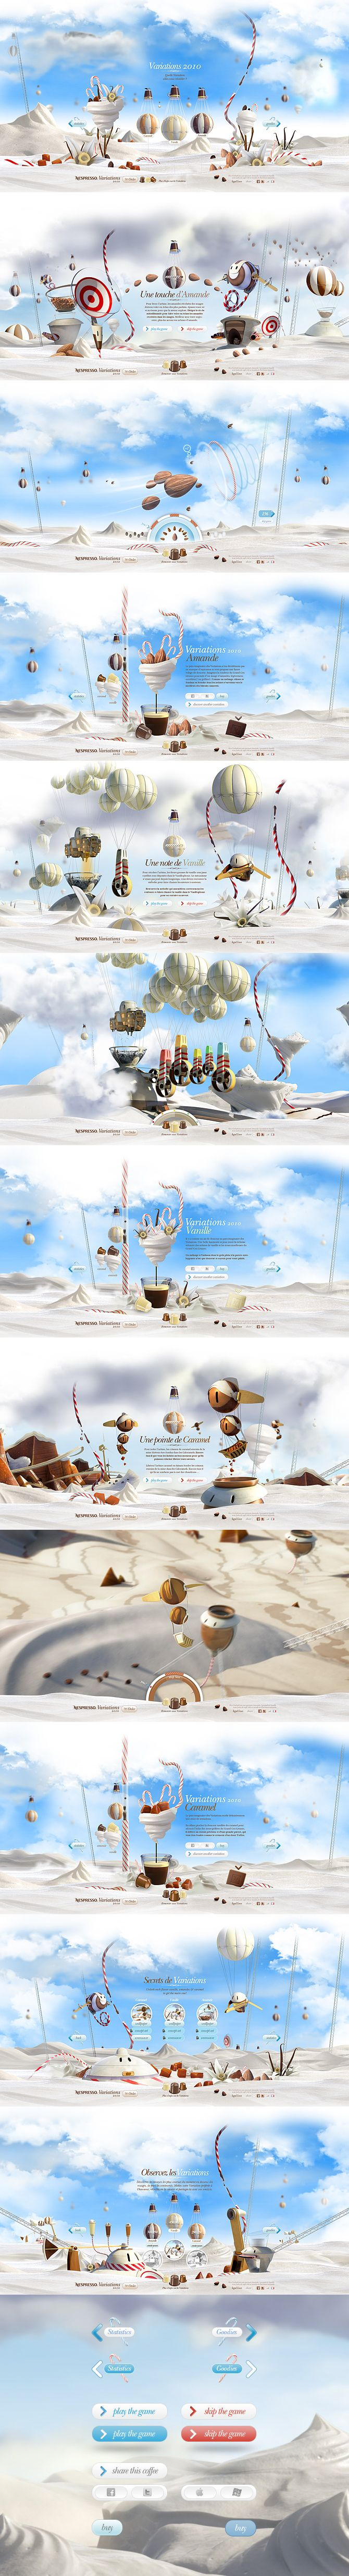 Amazing interactive website~! need to see! http://portfolio.soleilnoir.net/nespresso/variations2010/